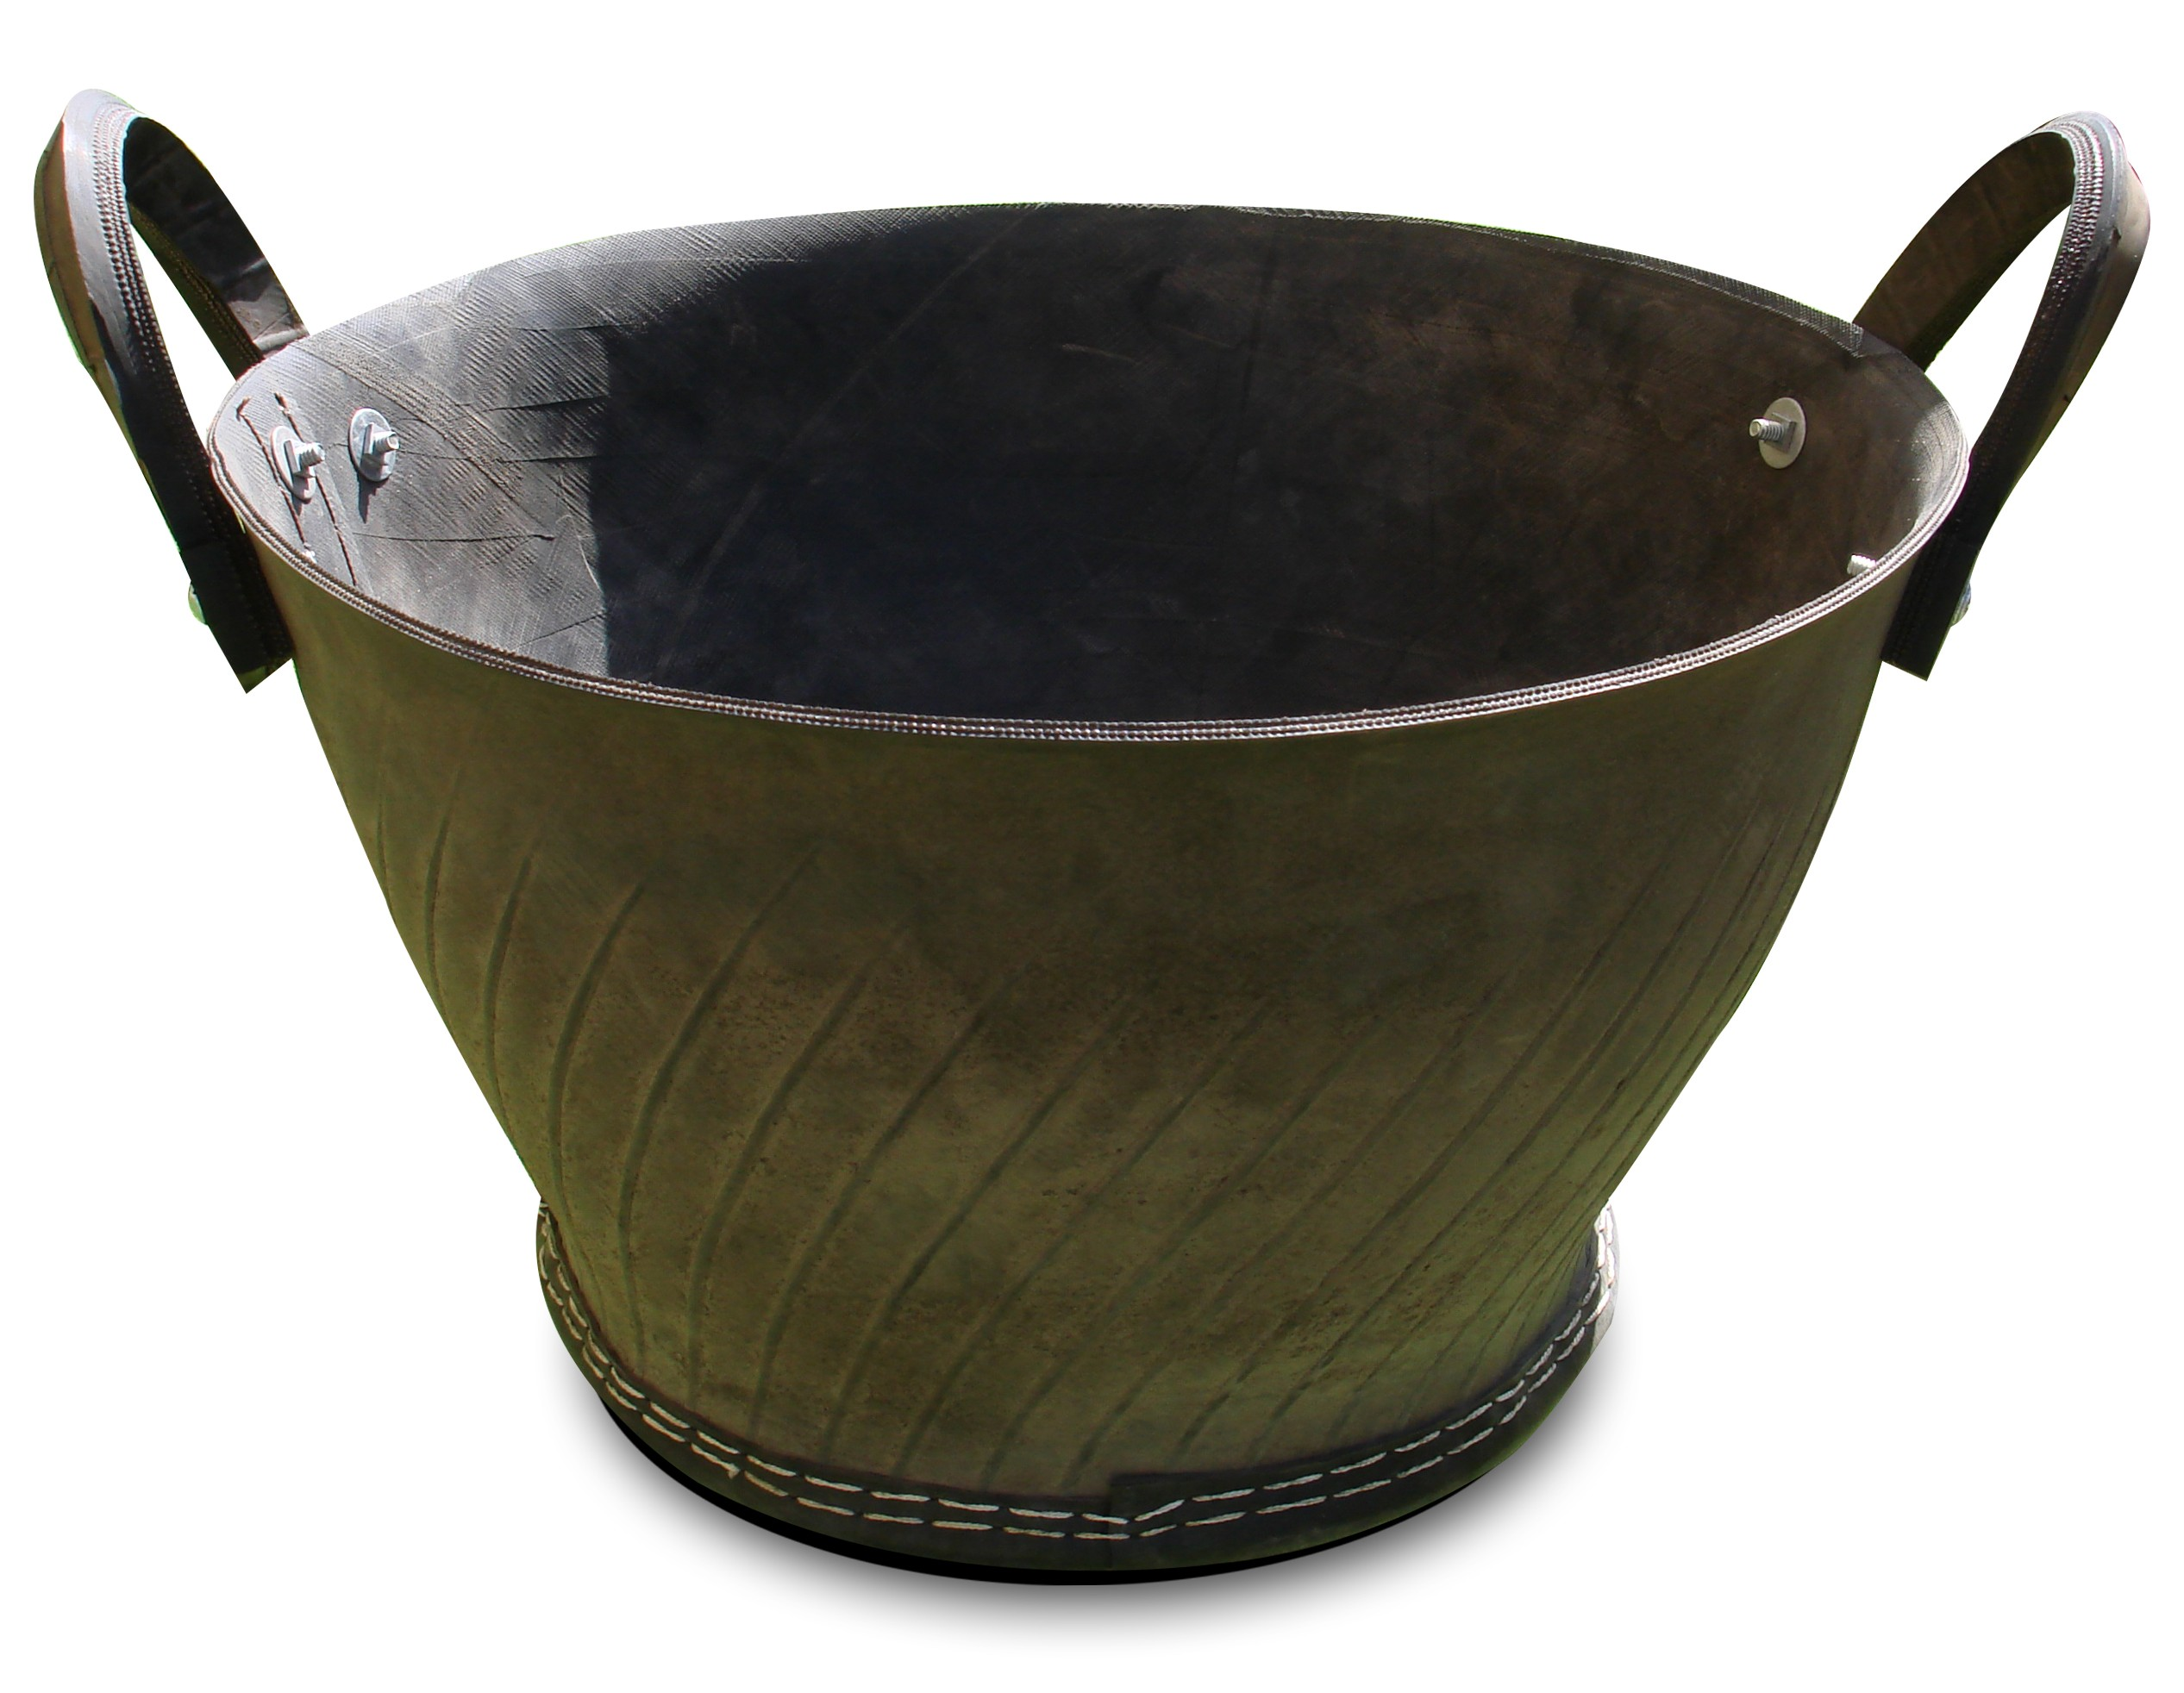 Recycled Rubber Pot - Low Basin